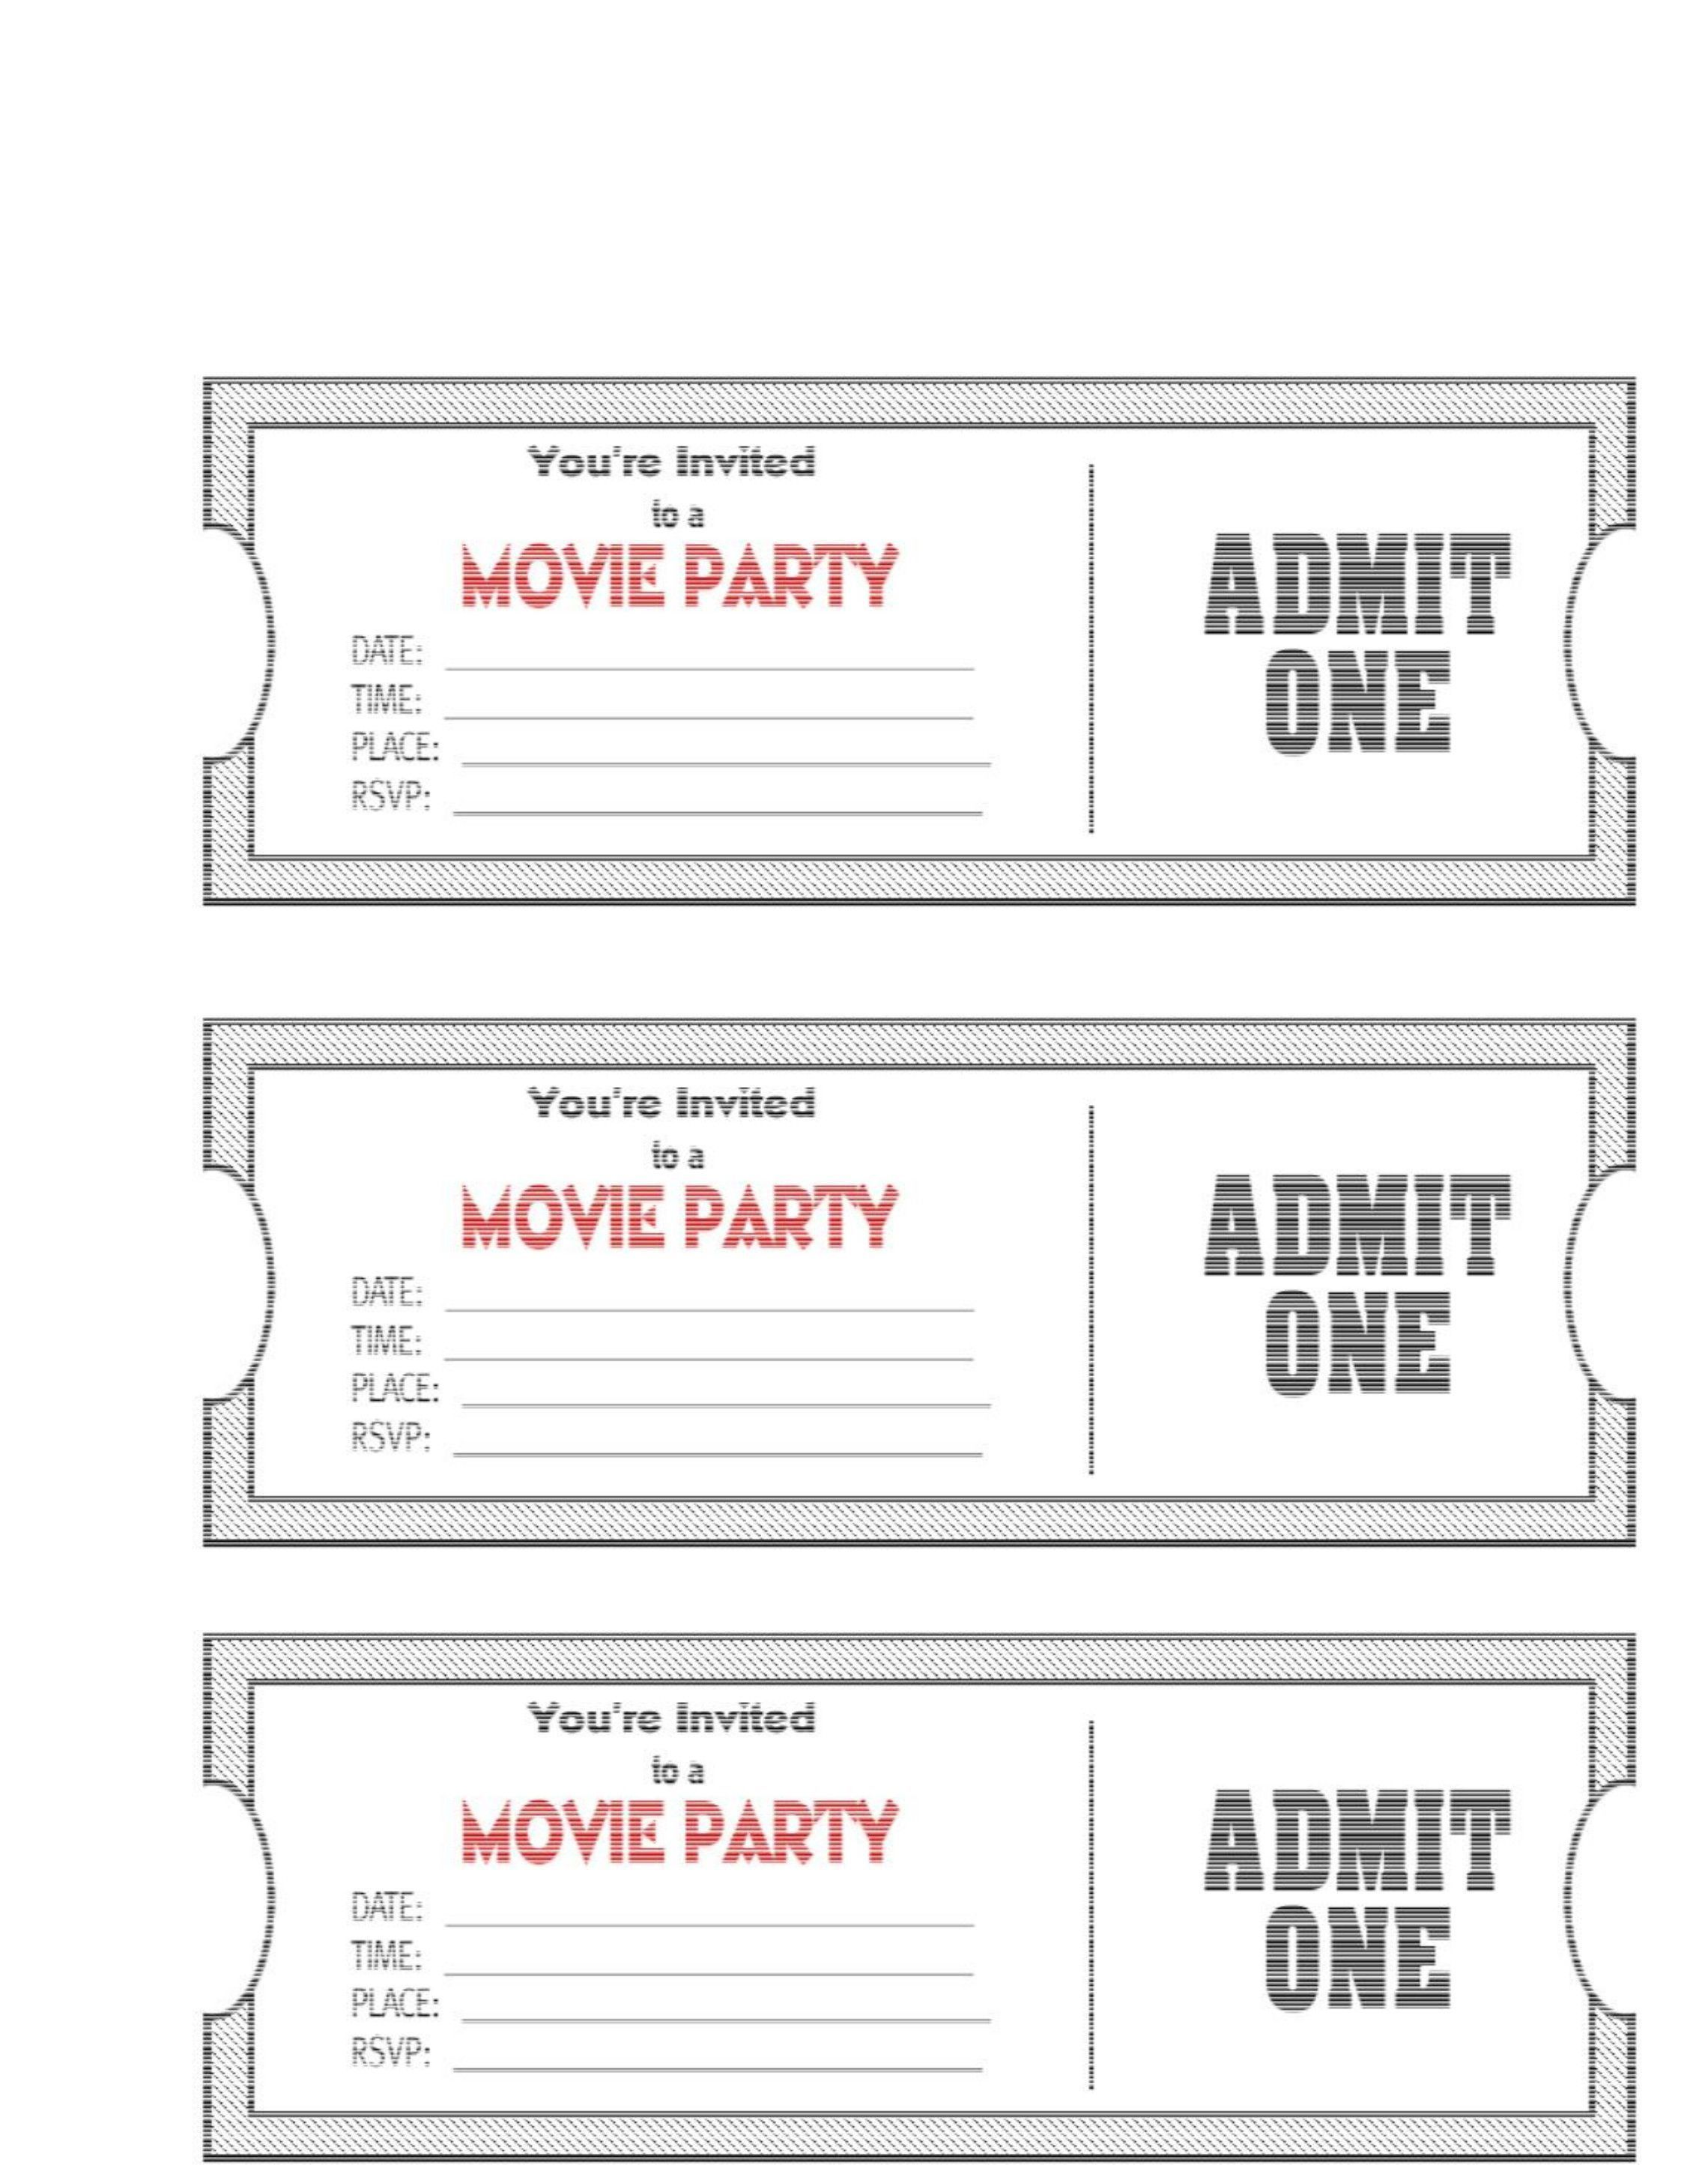 002 Stupendou Free Concert Ticket Maker Template Concept  Printable GiftFull